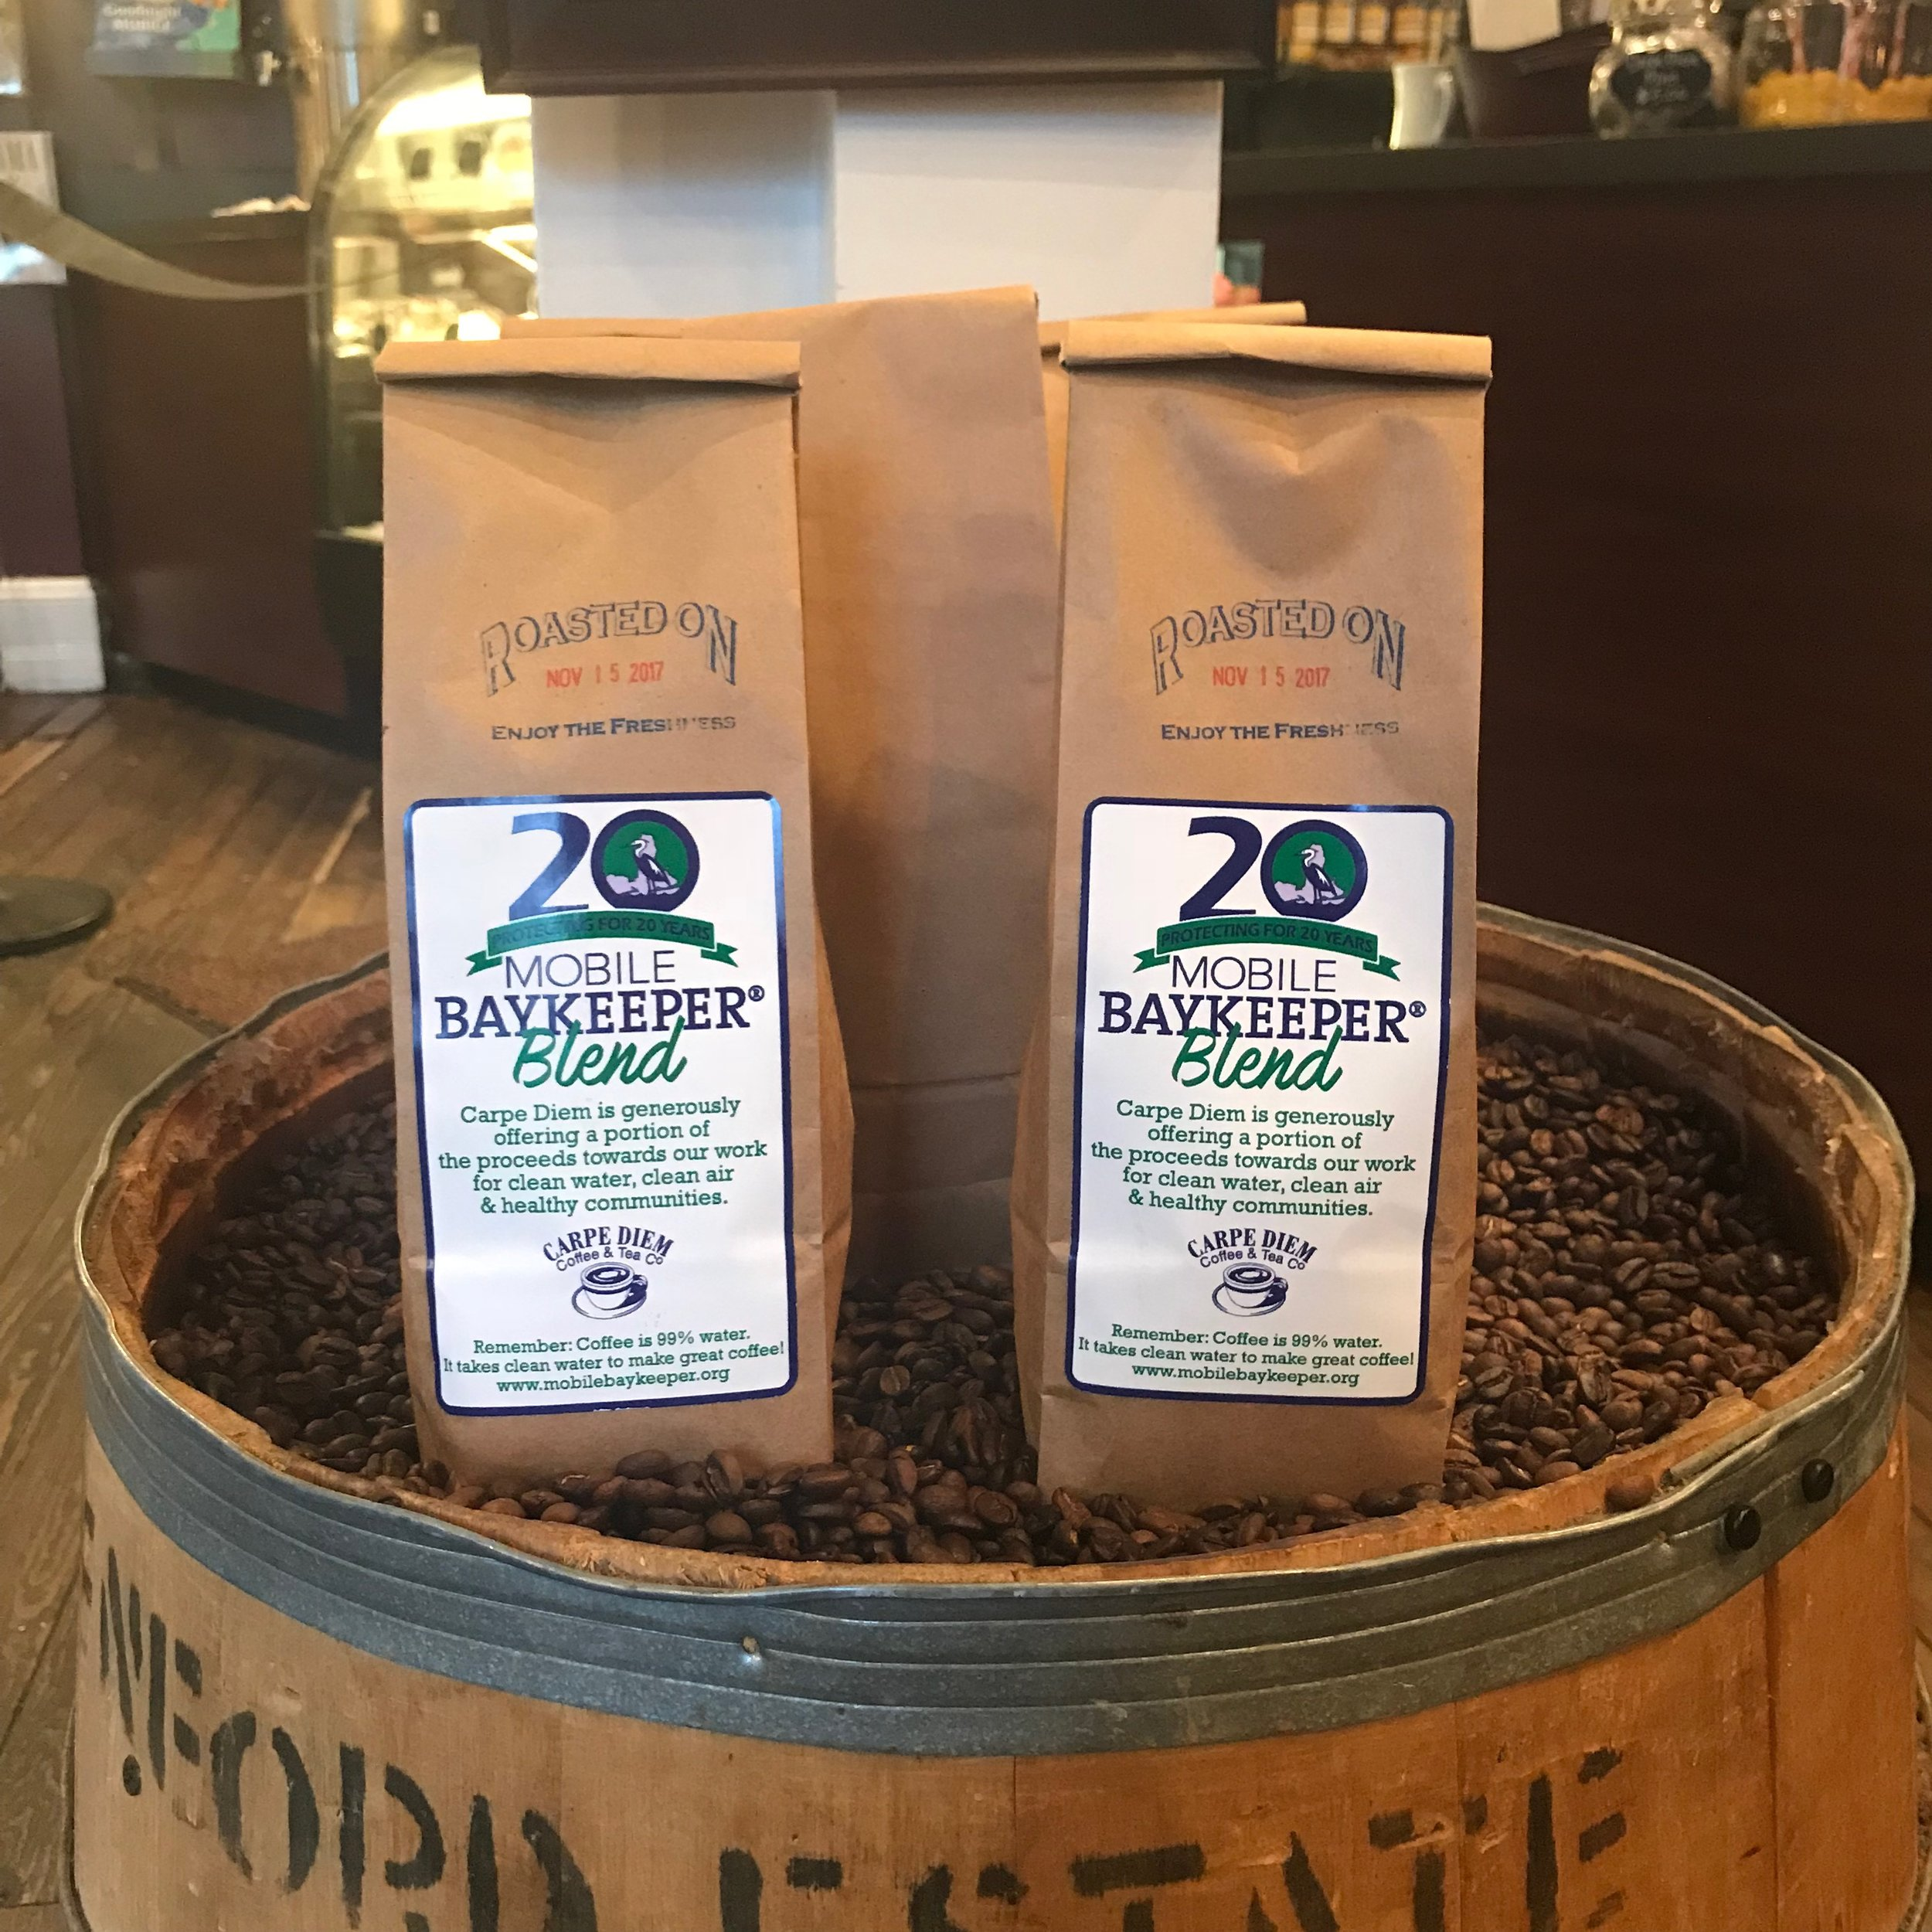 Visit Carpe Diem's website  here  to purchase your coffee today!